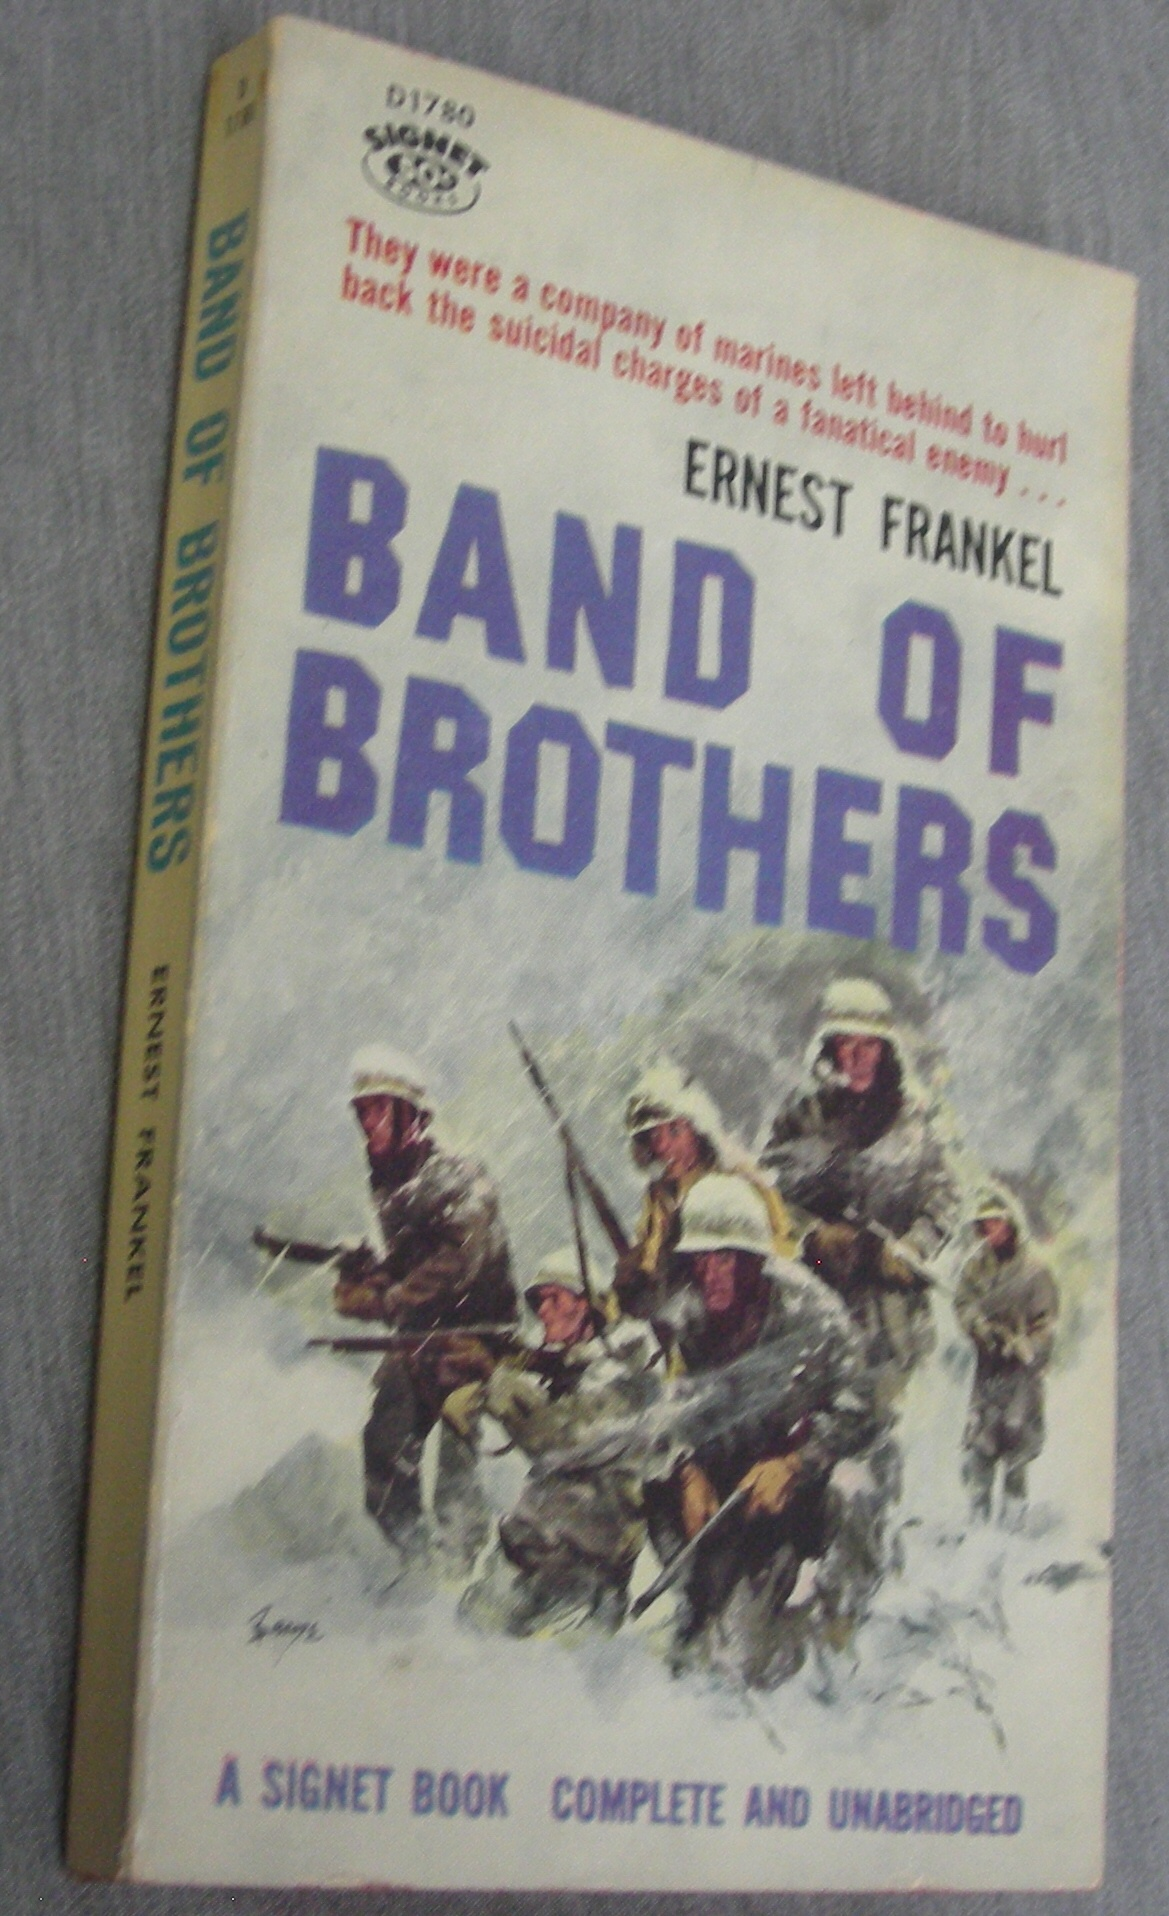 Image for Band of Brothers - They Were a Company of Marines Left Behind to Hurl Back the Suicidal Charges of a Fanatical Enemy...